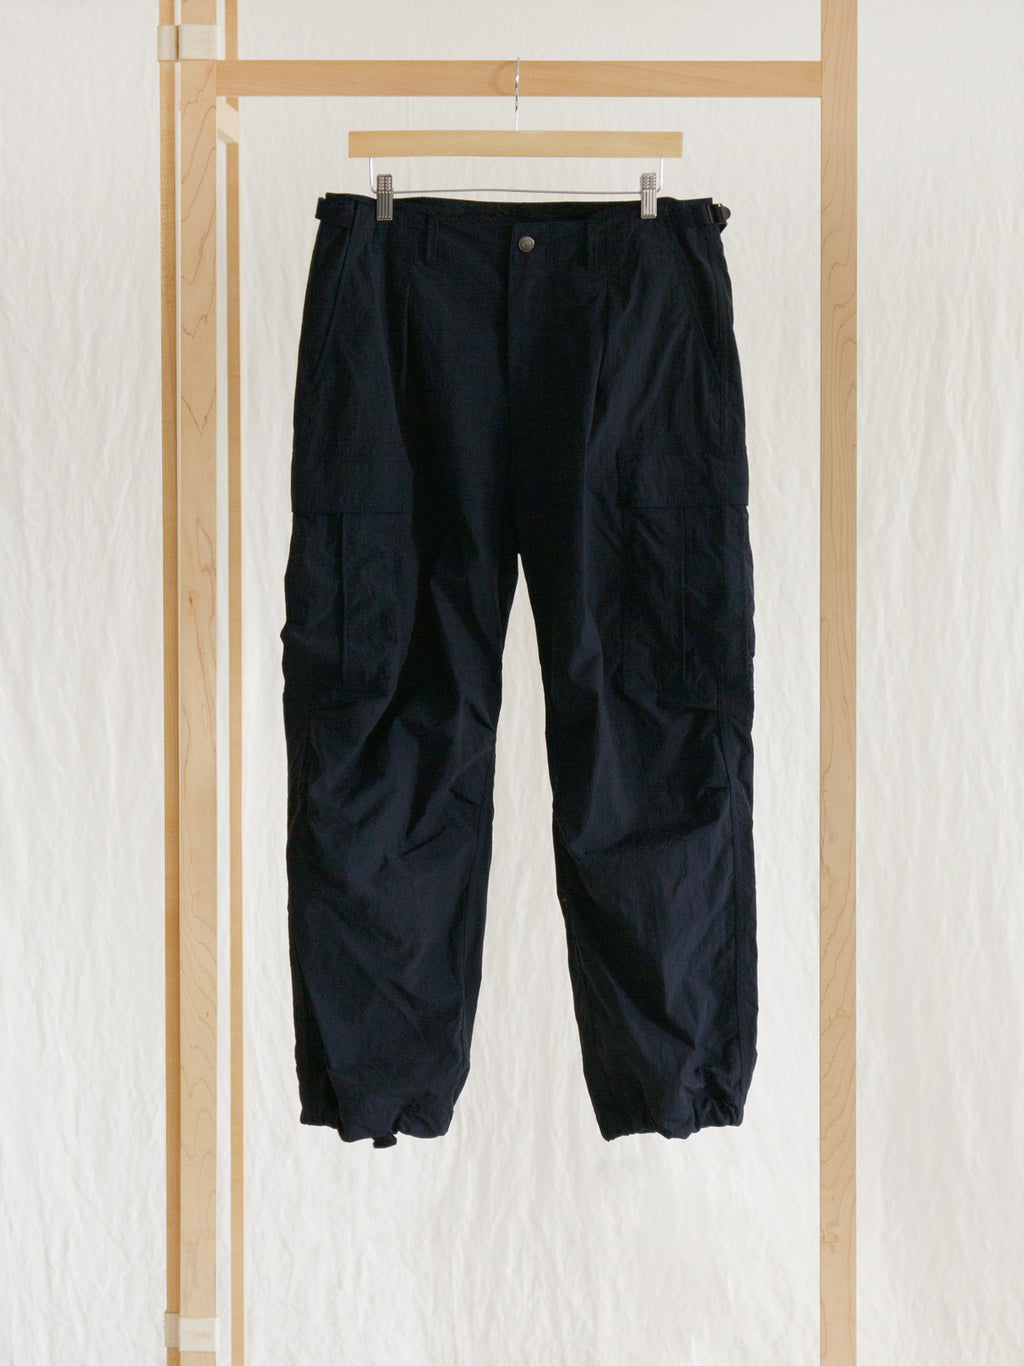 Namu Shop - Eastlogue Battle Field Pants - Navy Ripstop